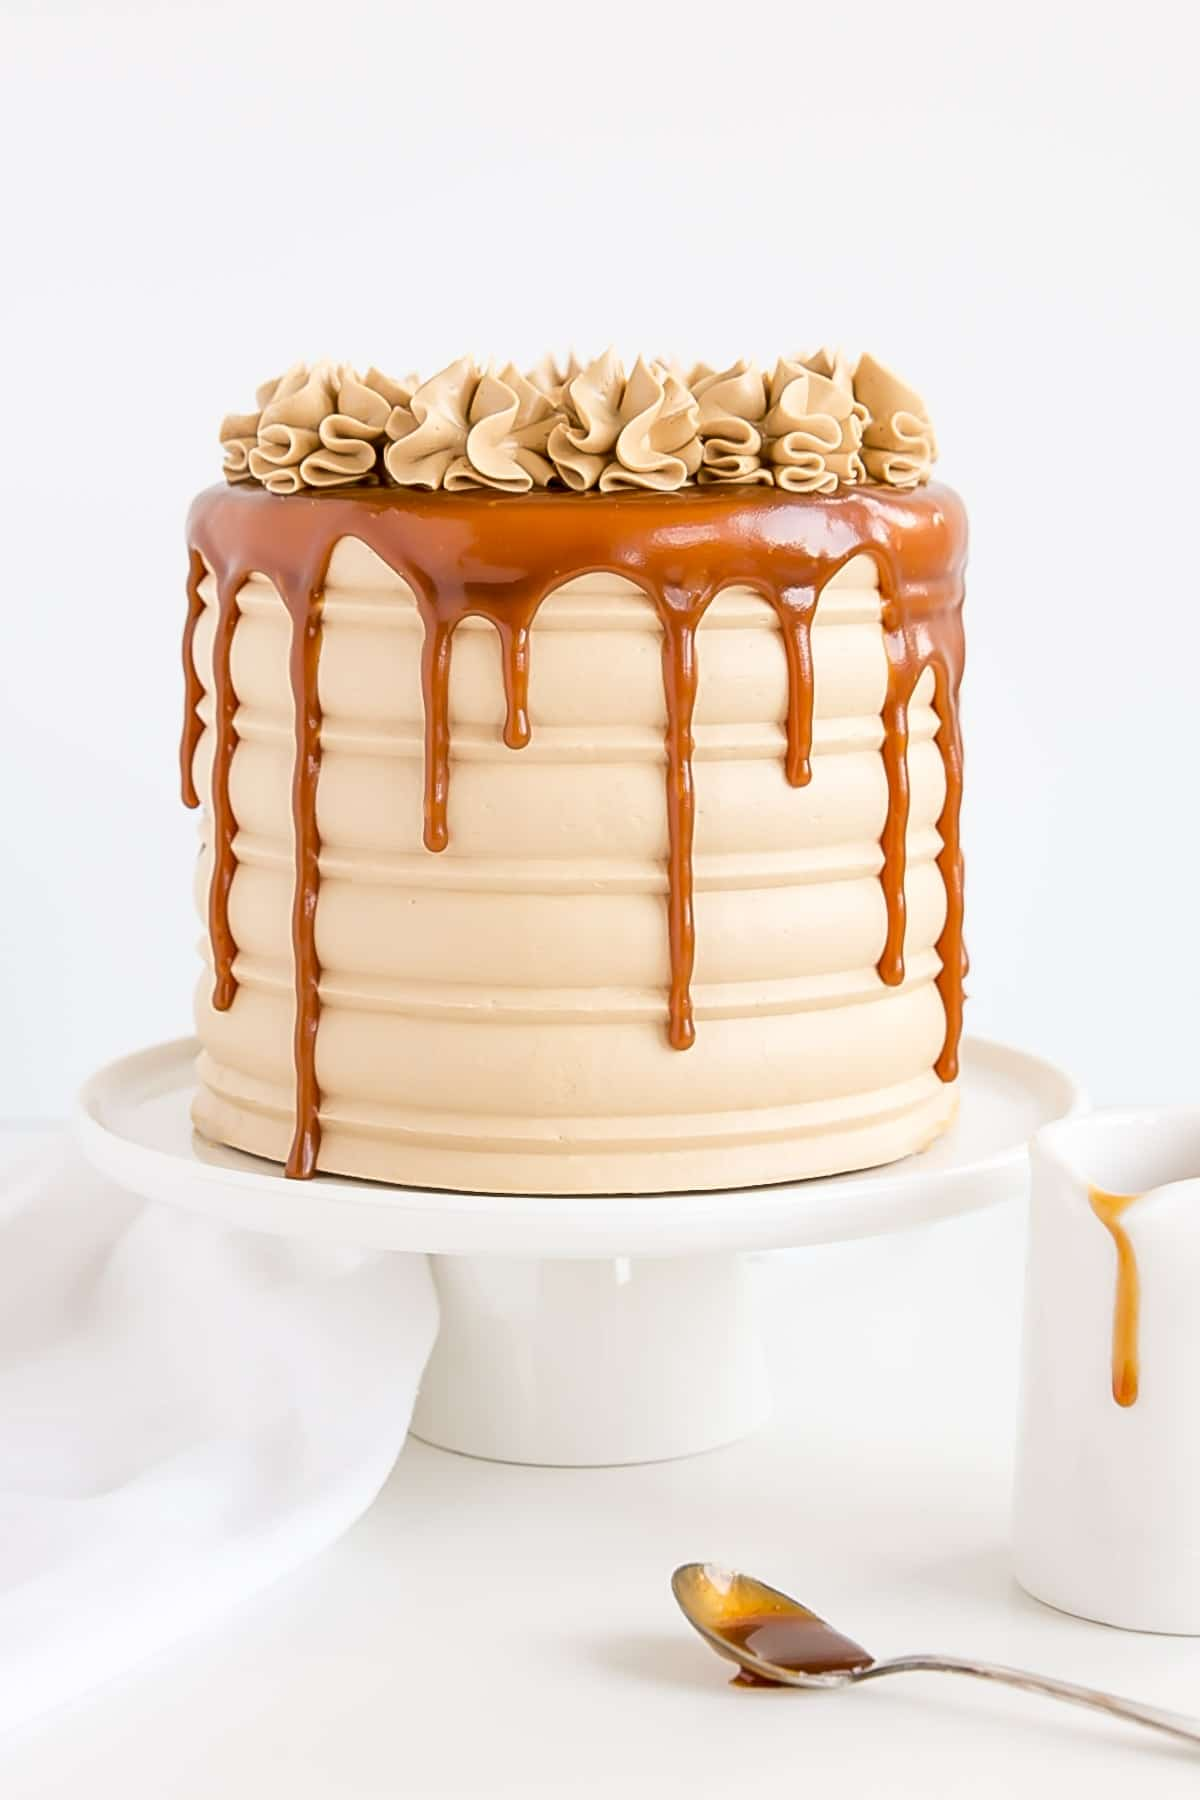 Liv For Cake Decadent And Delicious Cake Recipes